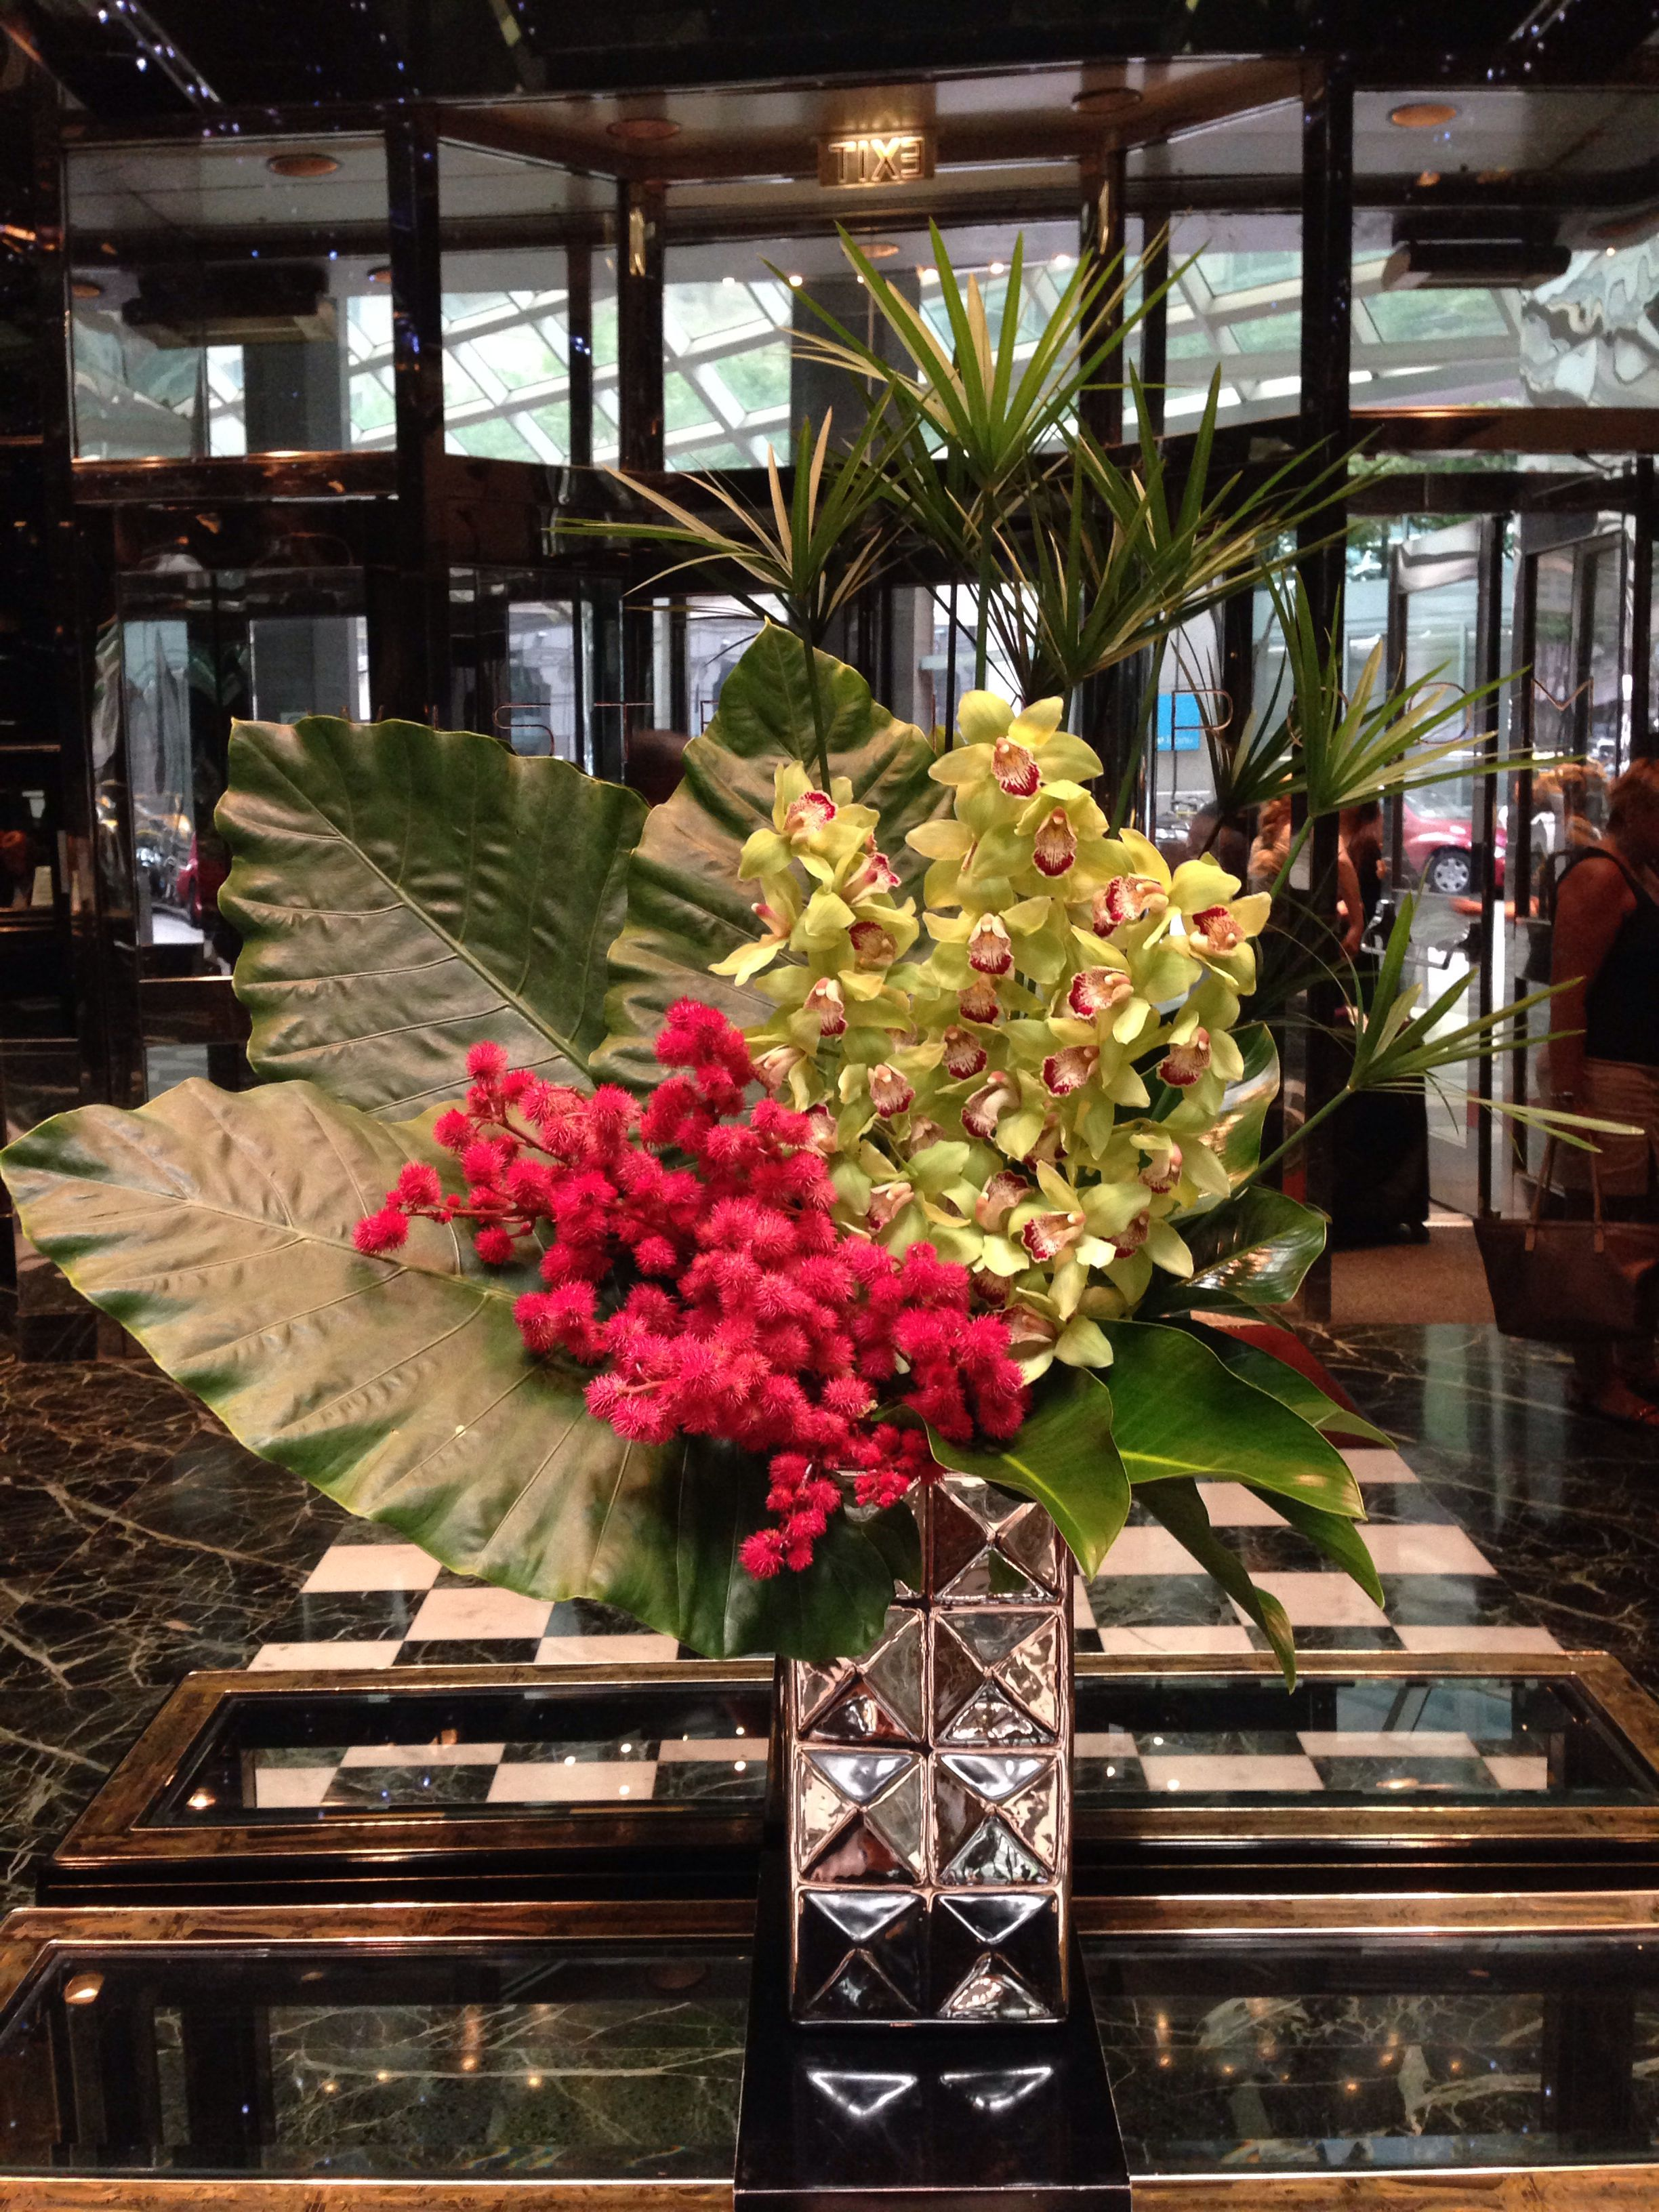 Hotel Foyer Flower Arrangements : Hotel lobby arrangement u c floral design lobbies